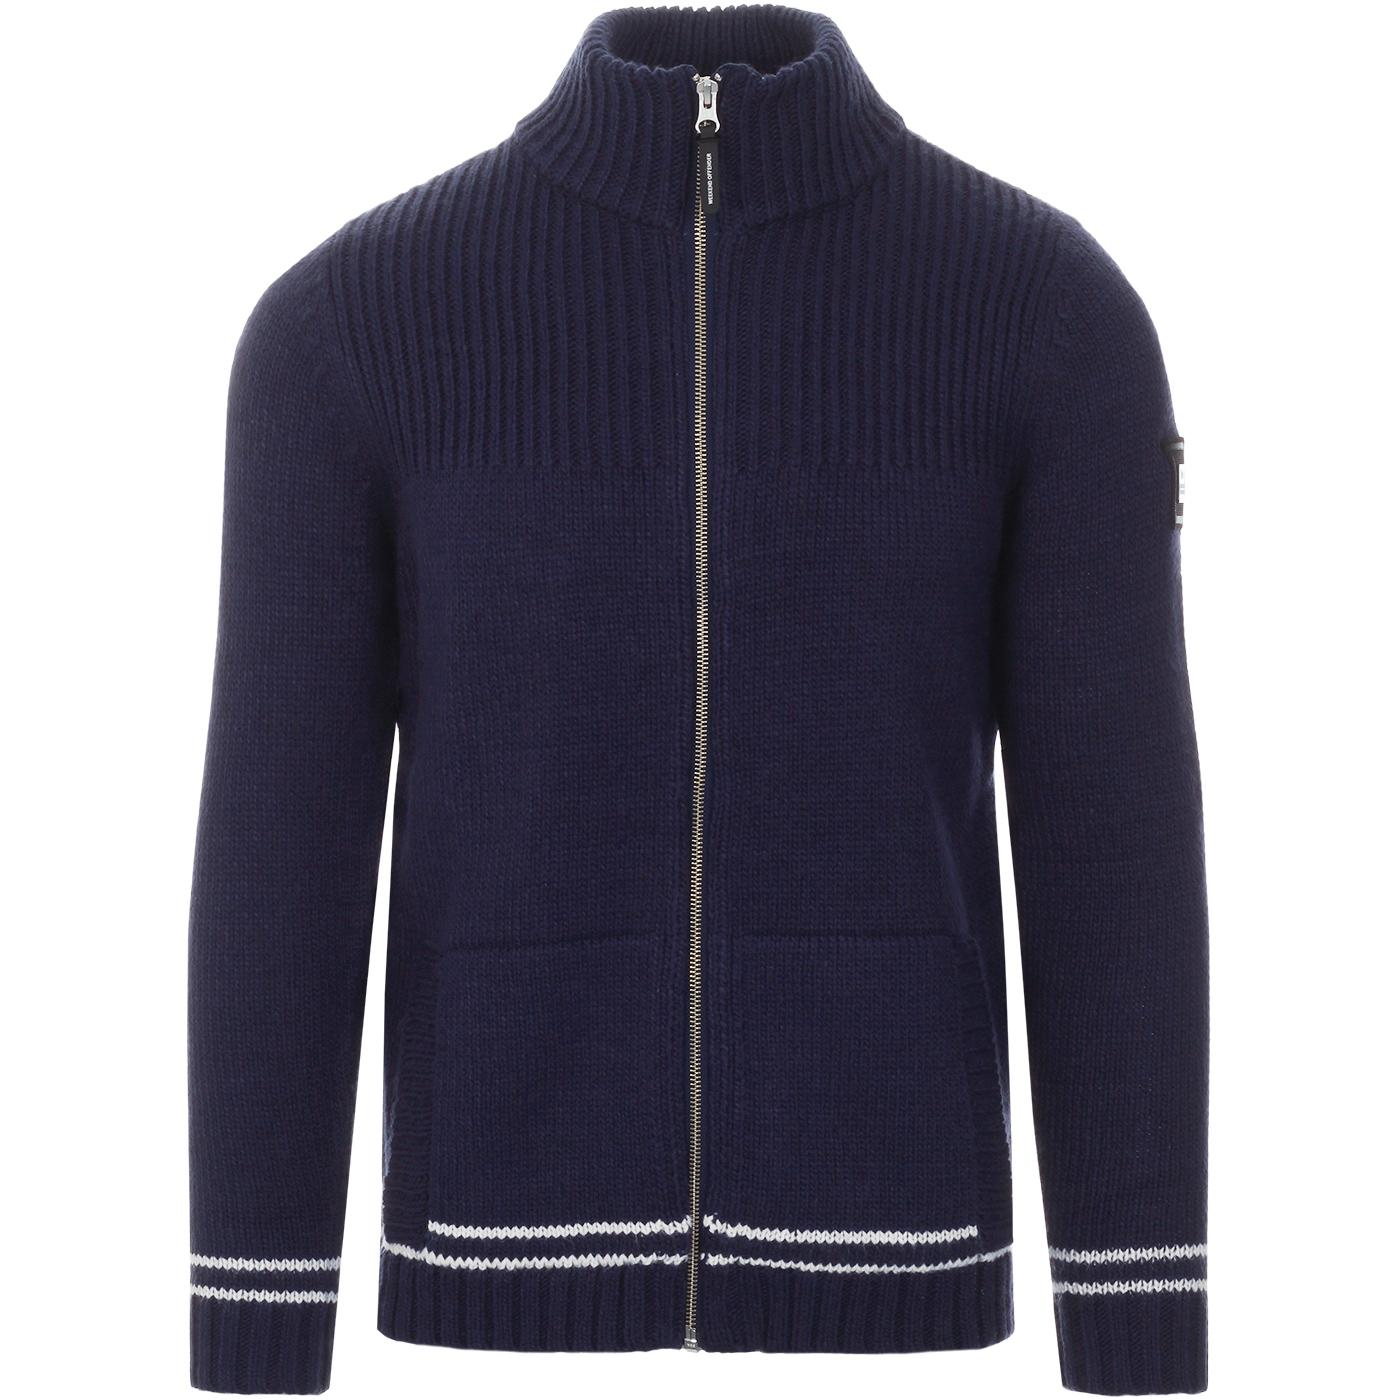 Lugo WEEKEND OFFENDER Retro Chunky Knit Cardigan